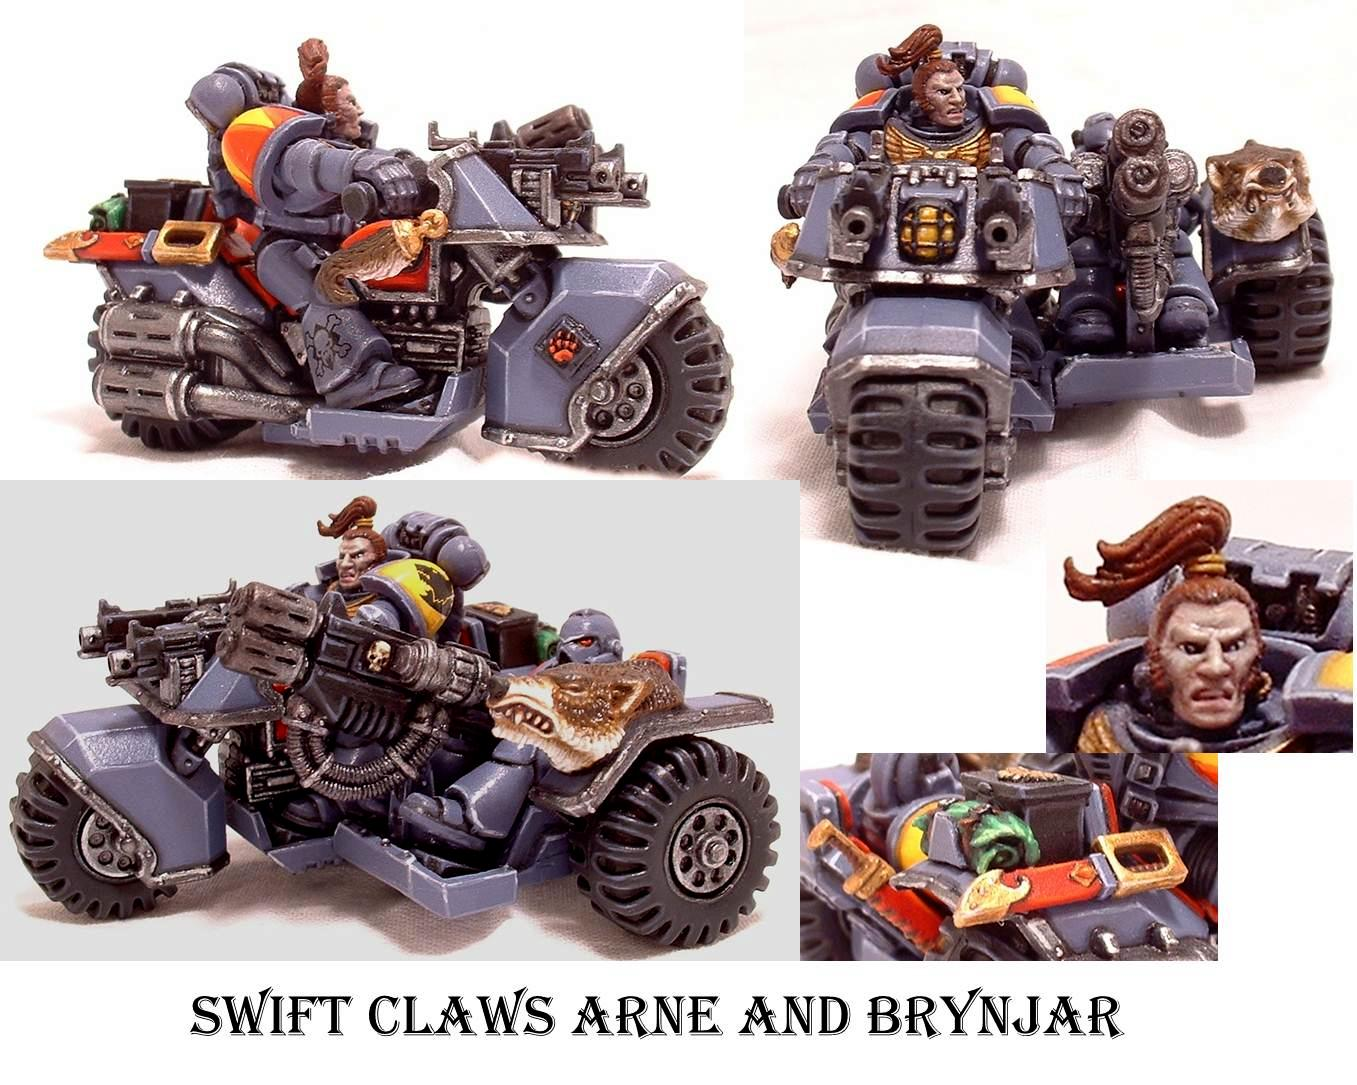 Space Wolves, Swift Claws Attack Bike, Warhammer 40,000